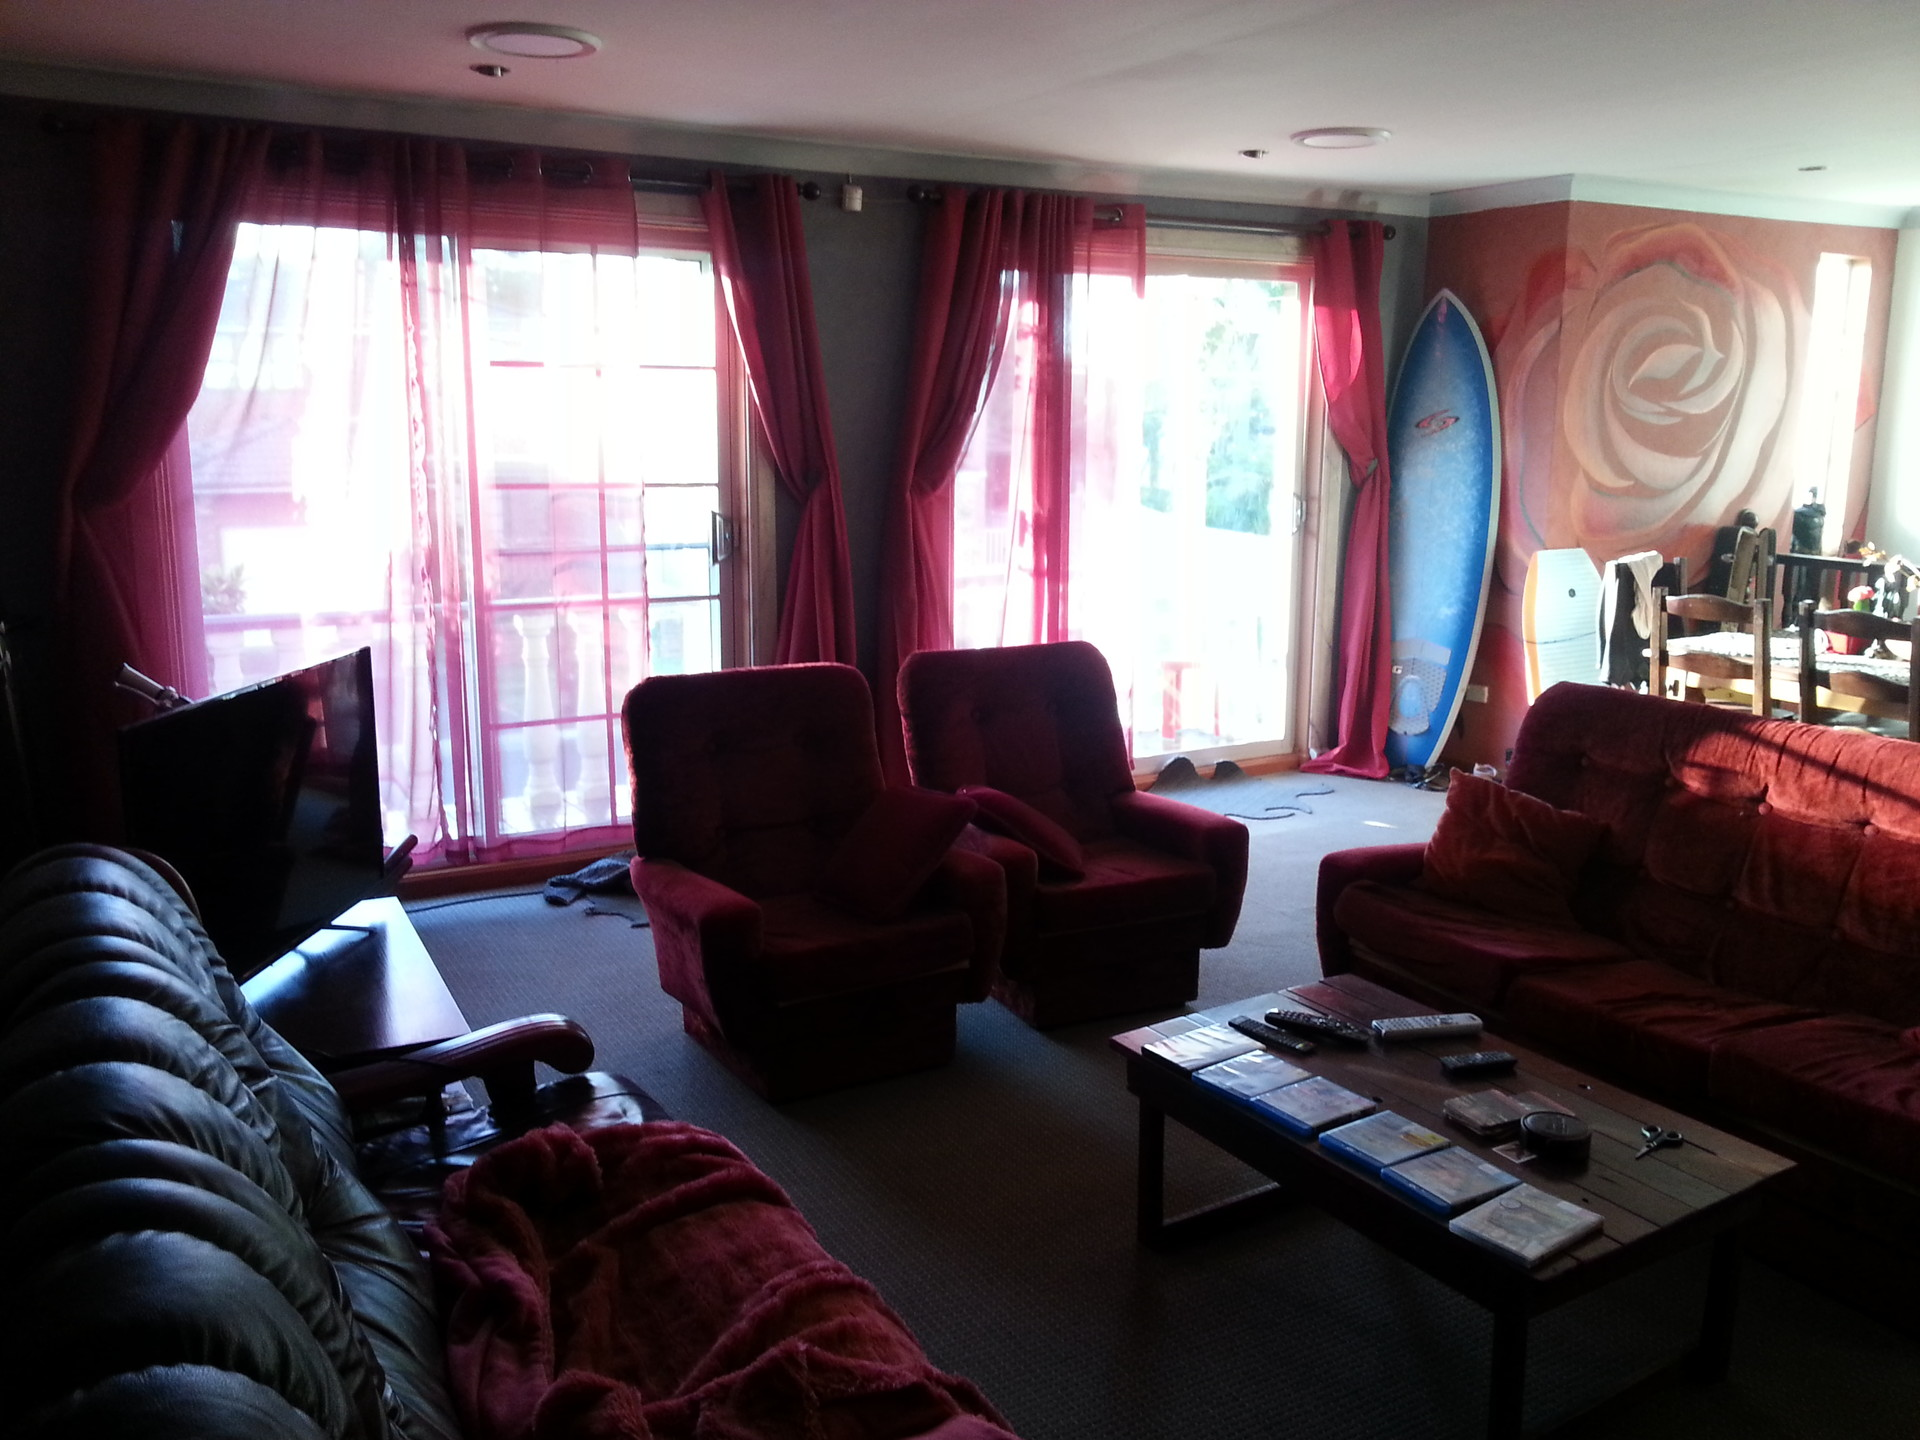 Choice of 2 rooms in our Arthouse in Maroubra beach, Sydney Aust